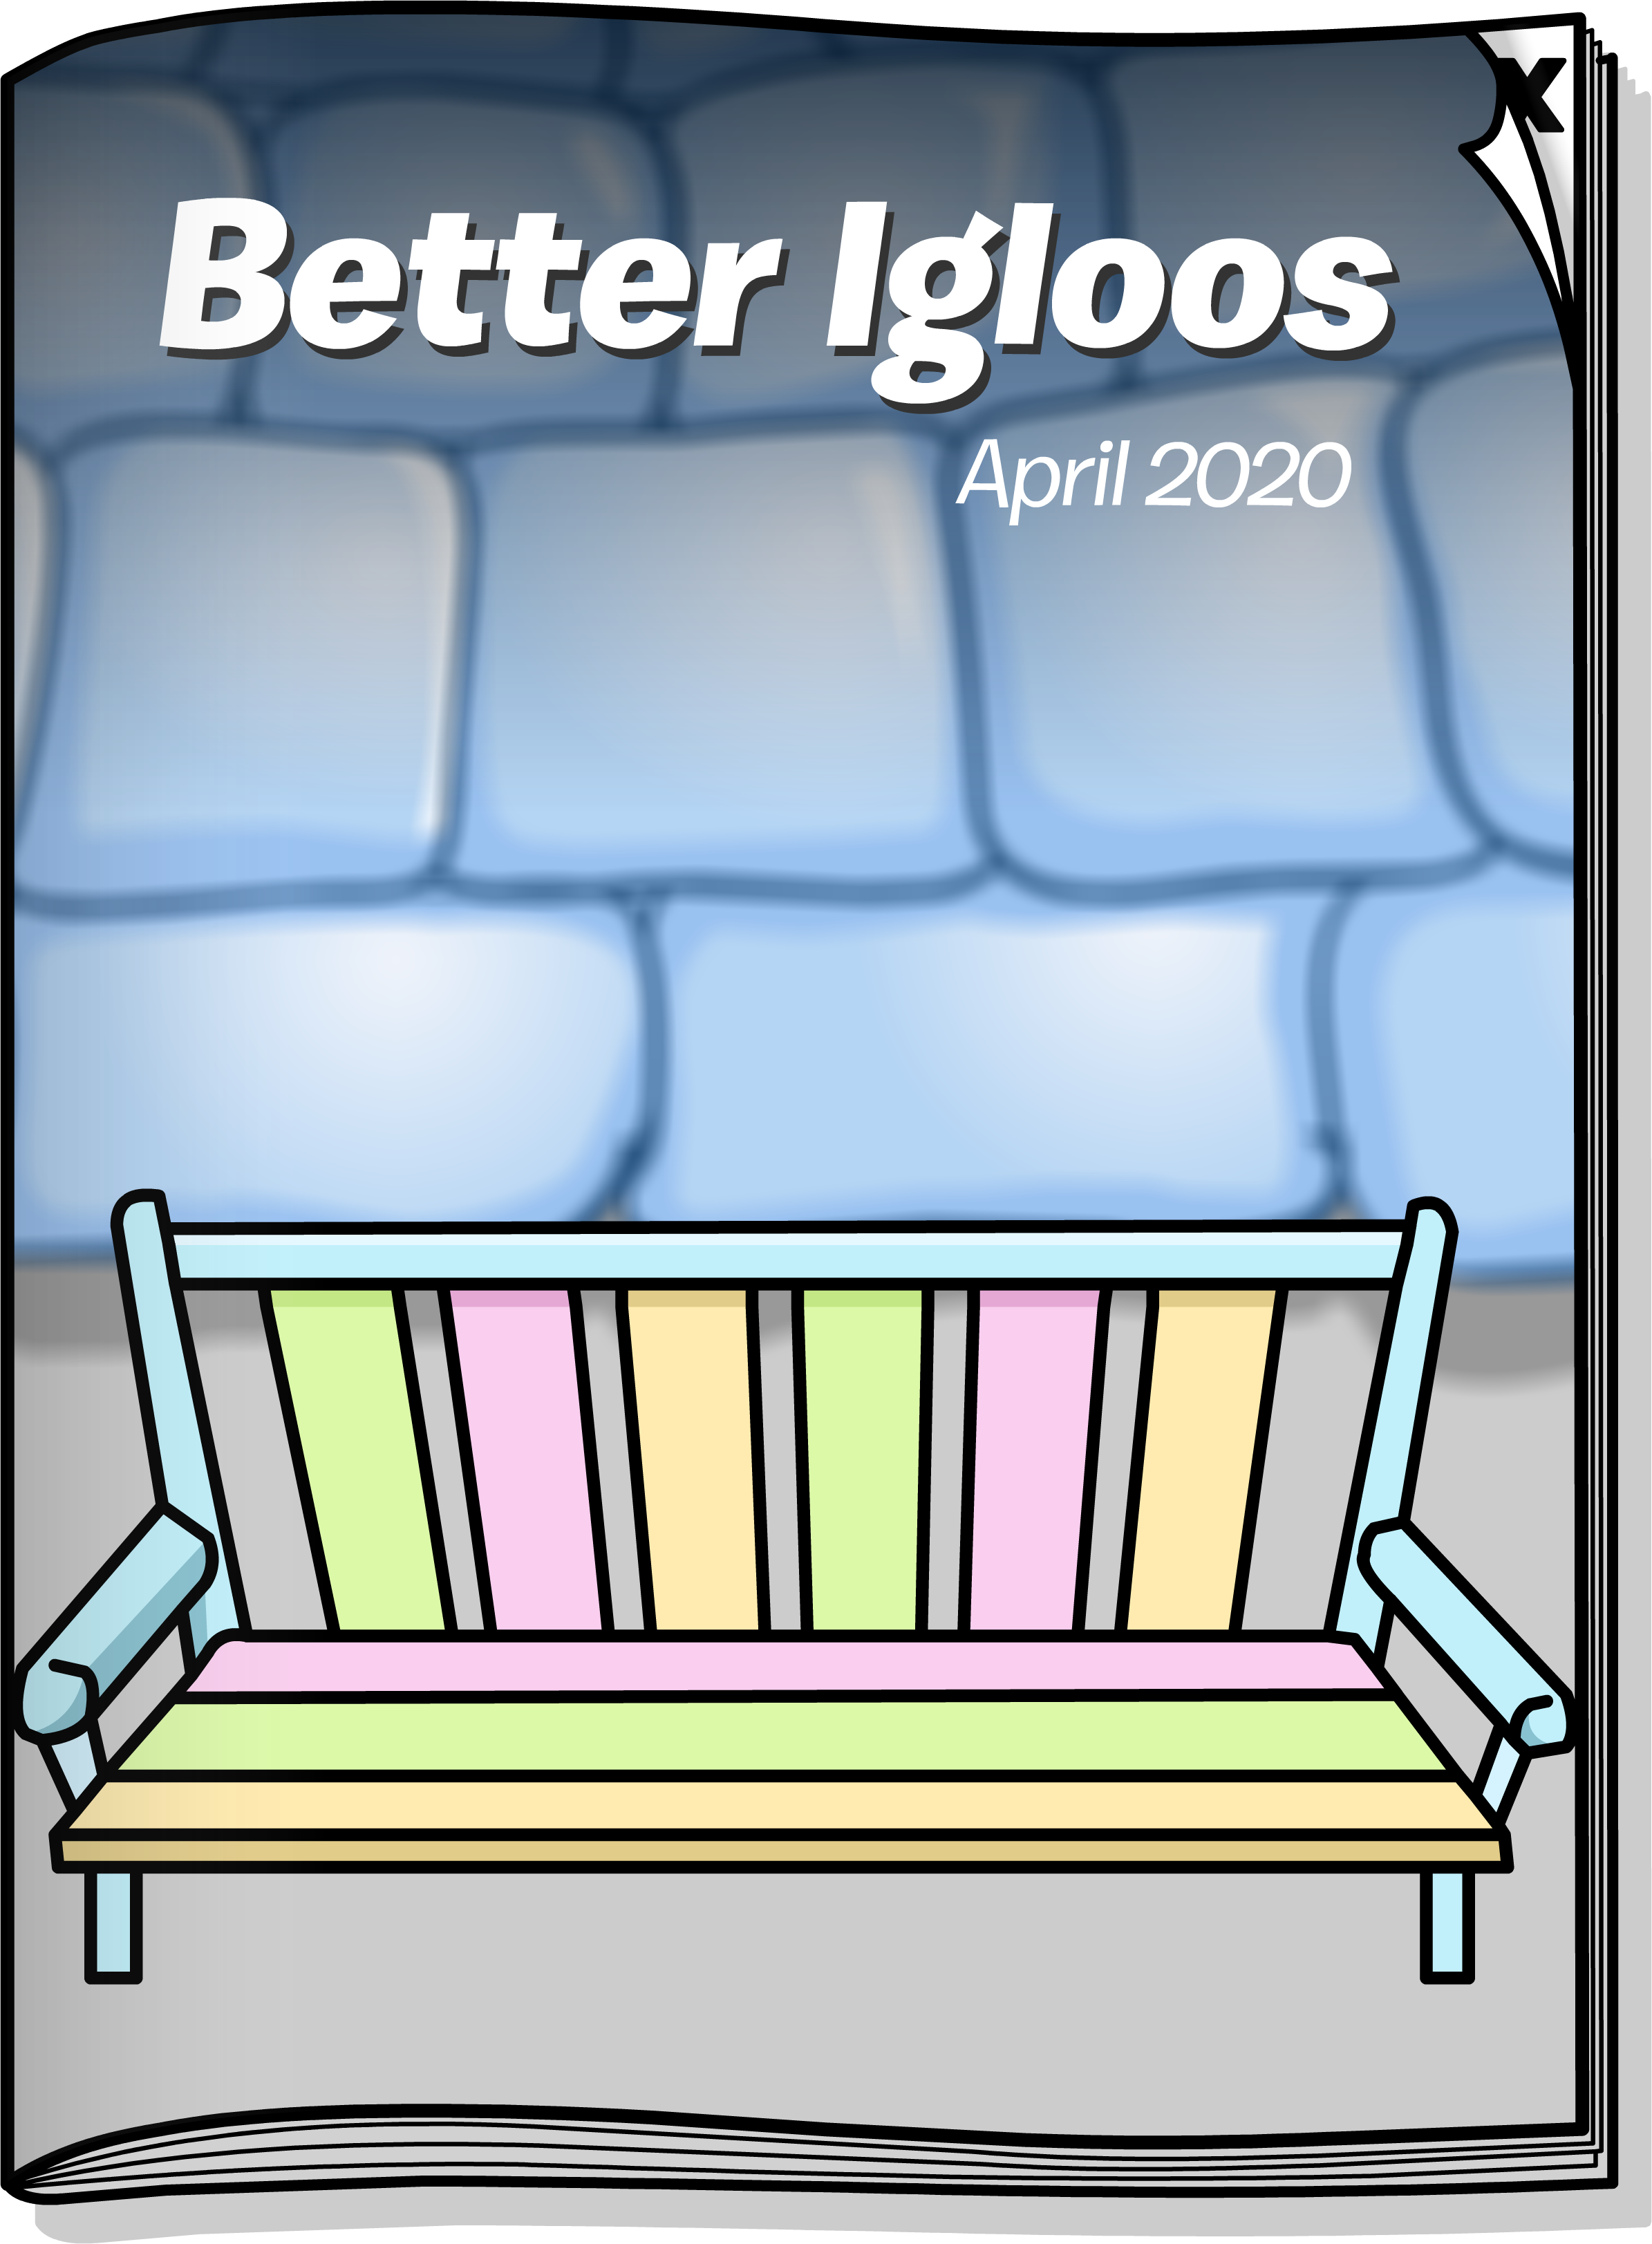 Better Igloos Apr'20